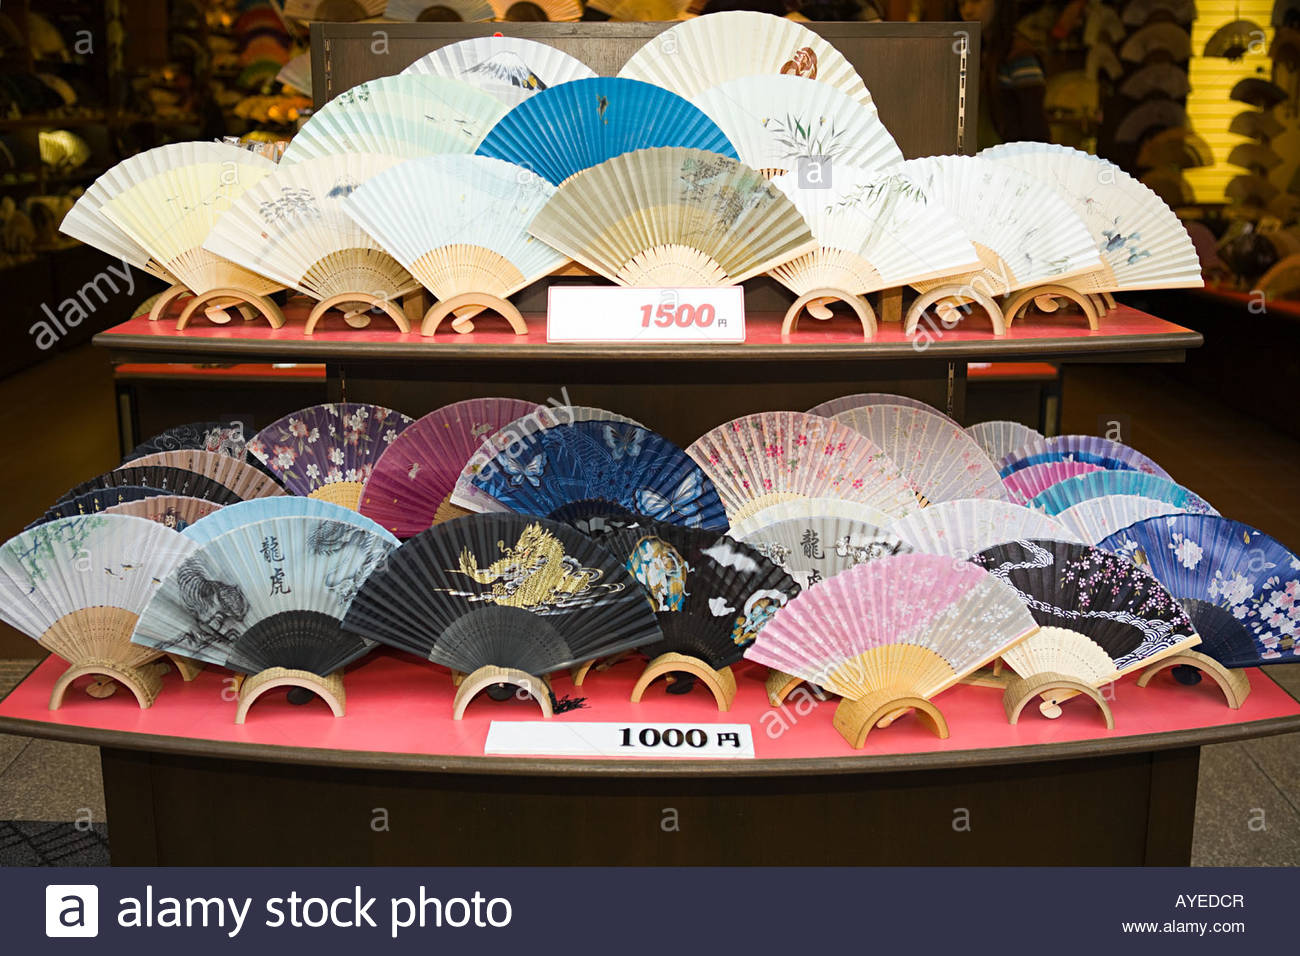 Japanese fans - Stock Image